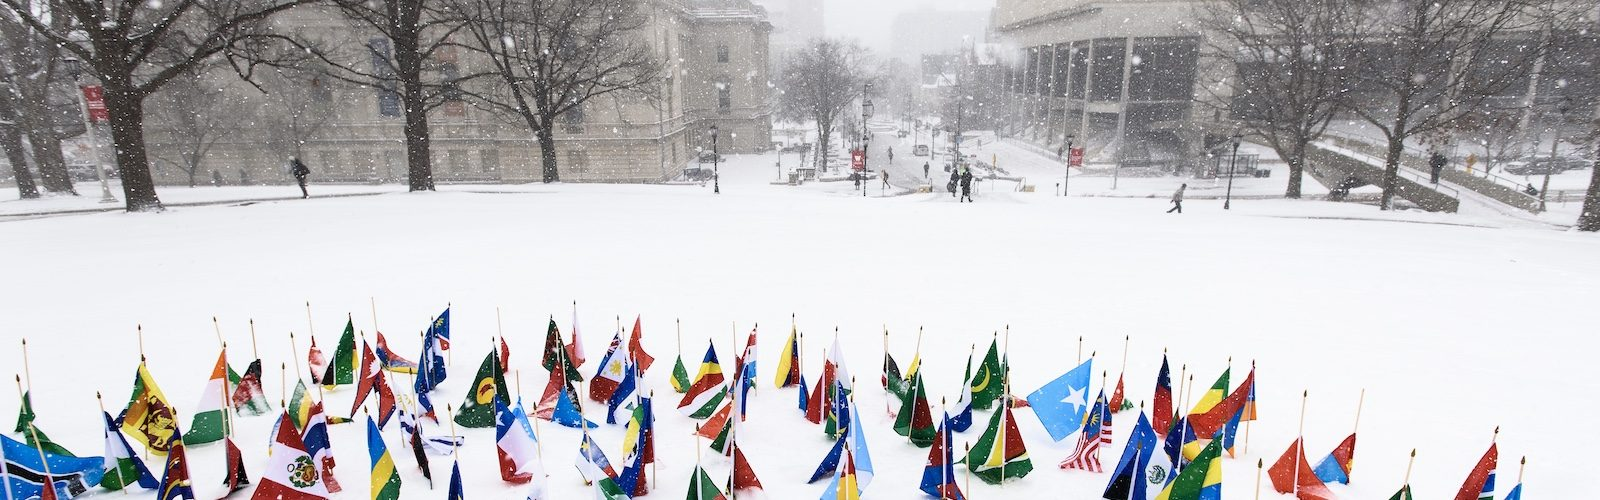 International flags in snow